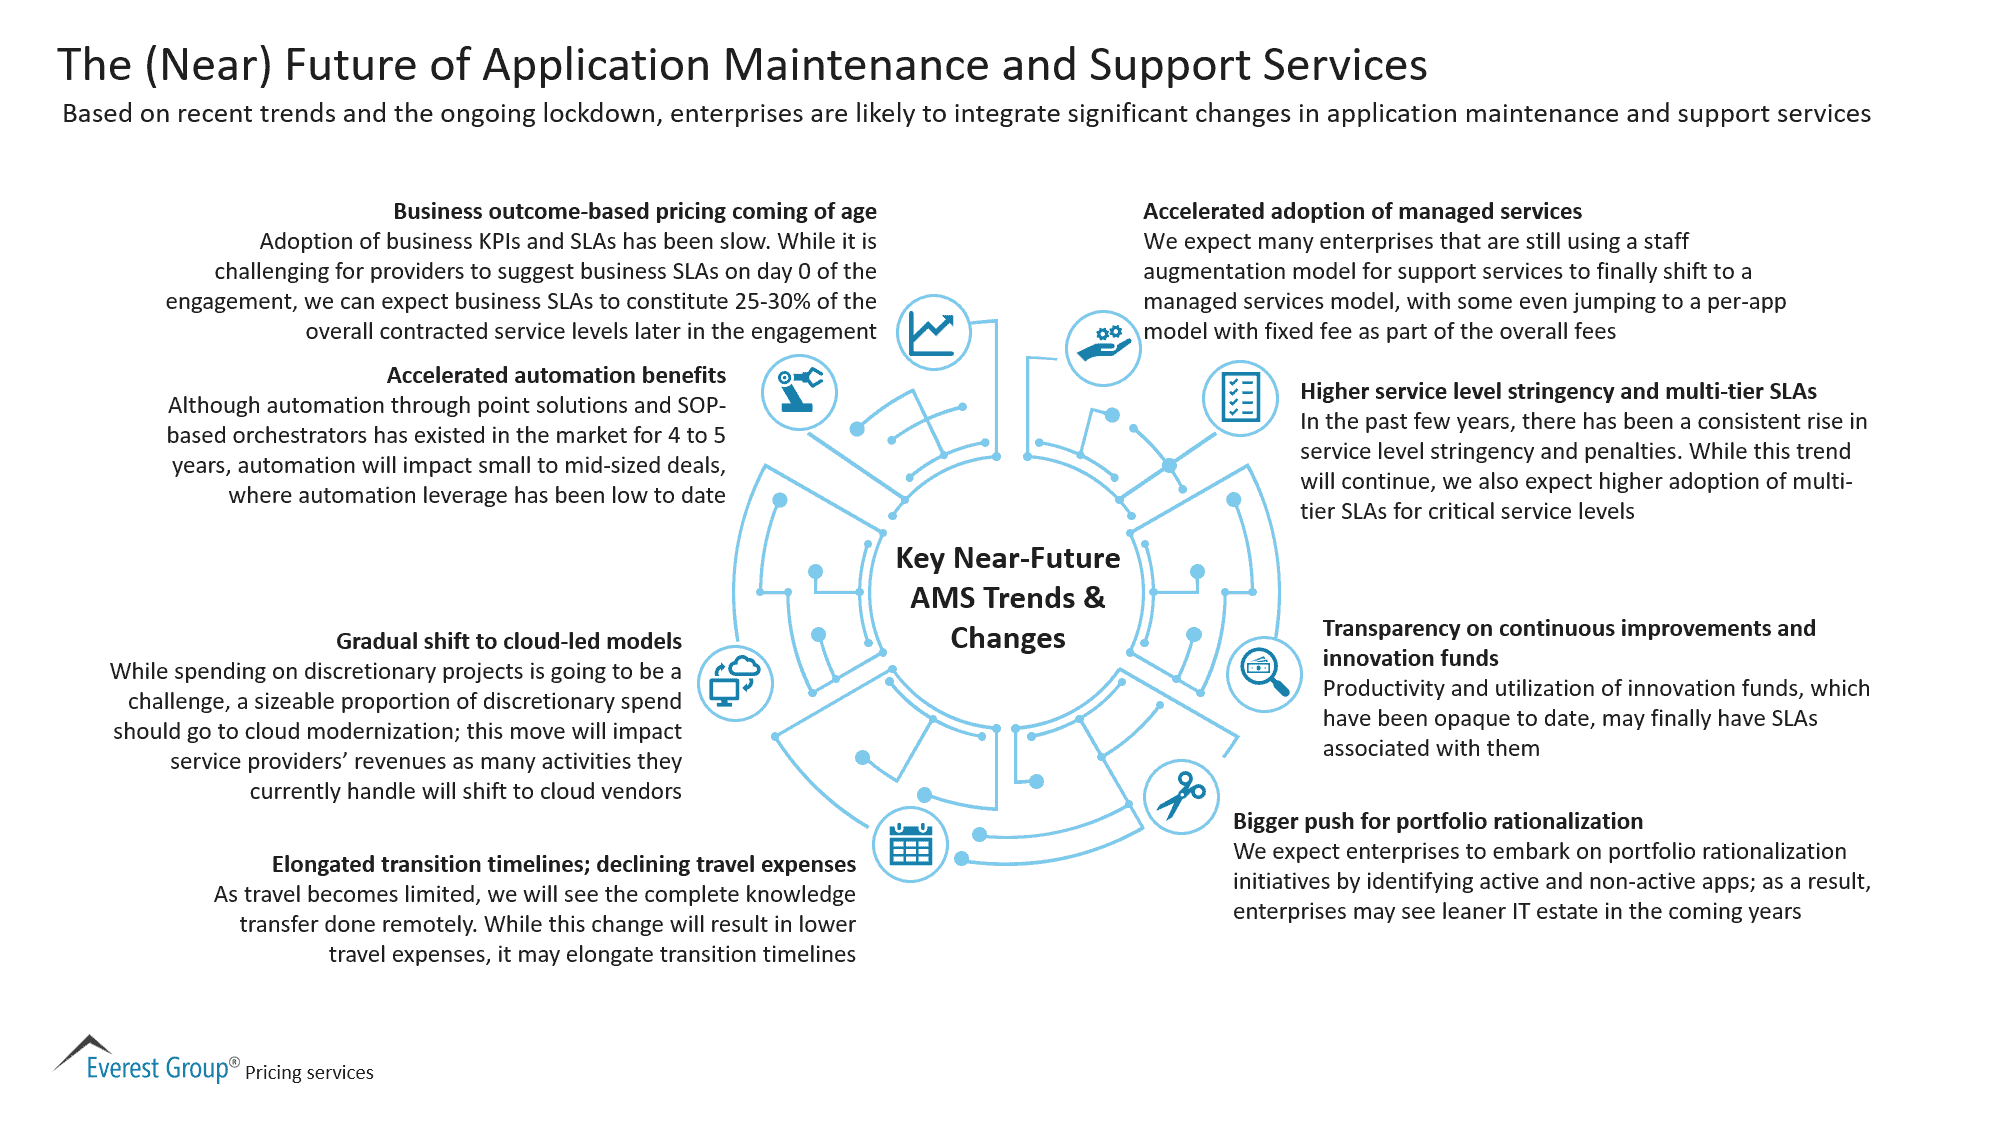 The Near Future of Application Maintenance and Support Services